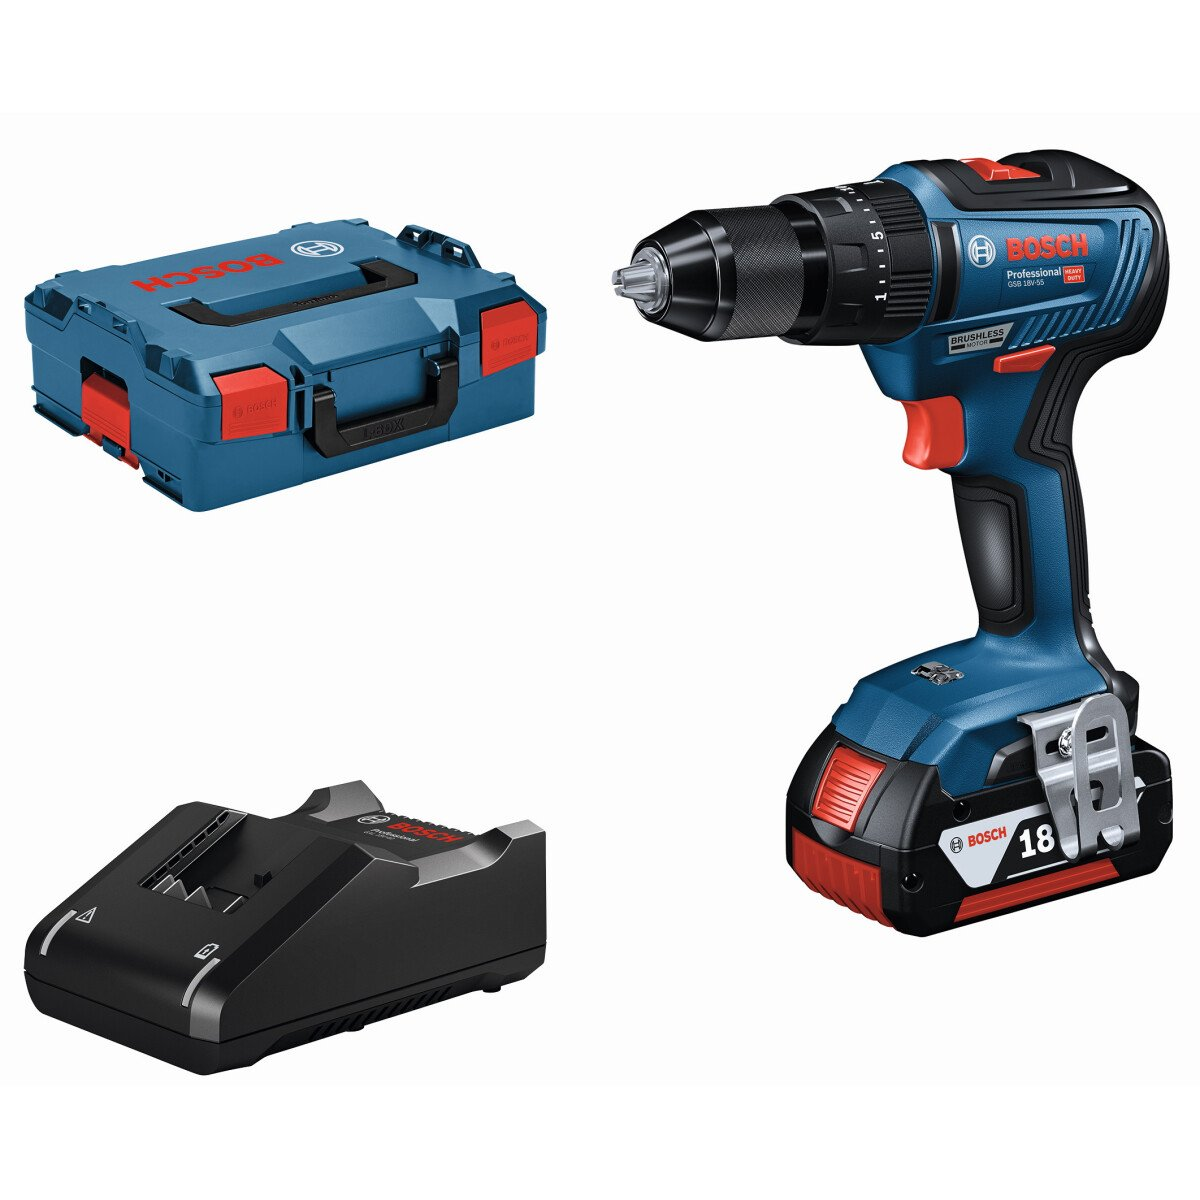 Bosch GSB 18V-55 18V Brushless 2 Speed Combi Drill with Metal Chuck 2x2.0Ah Batteries in L-Boxx Connection Ready